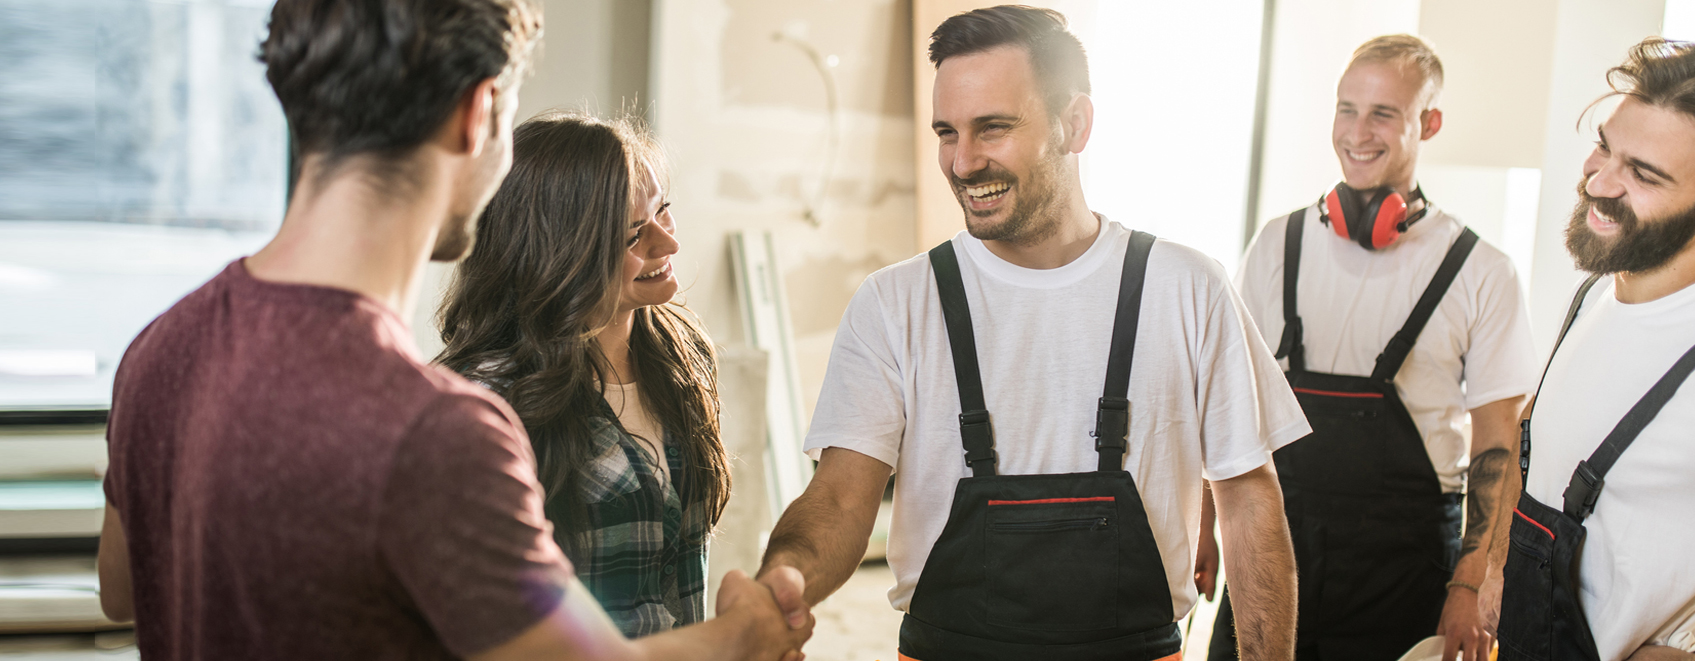 Contractors shaking hands with local business owners in-between work